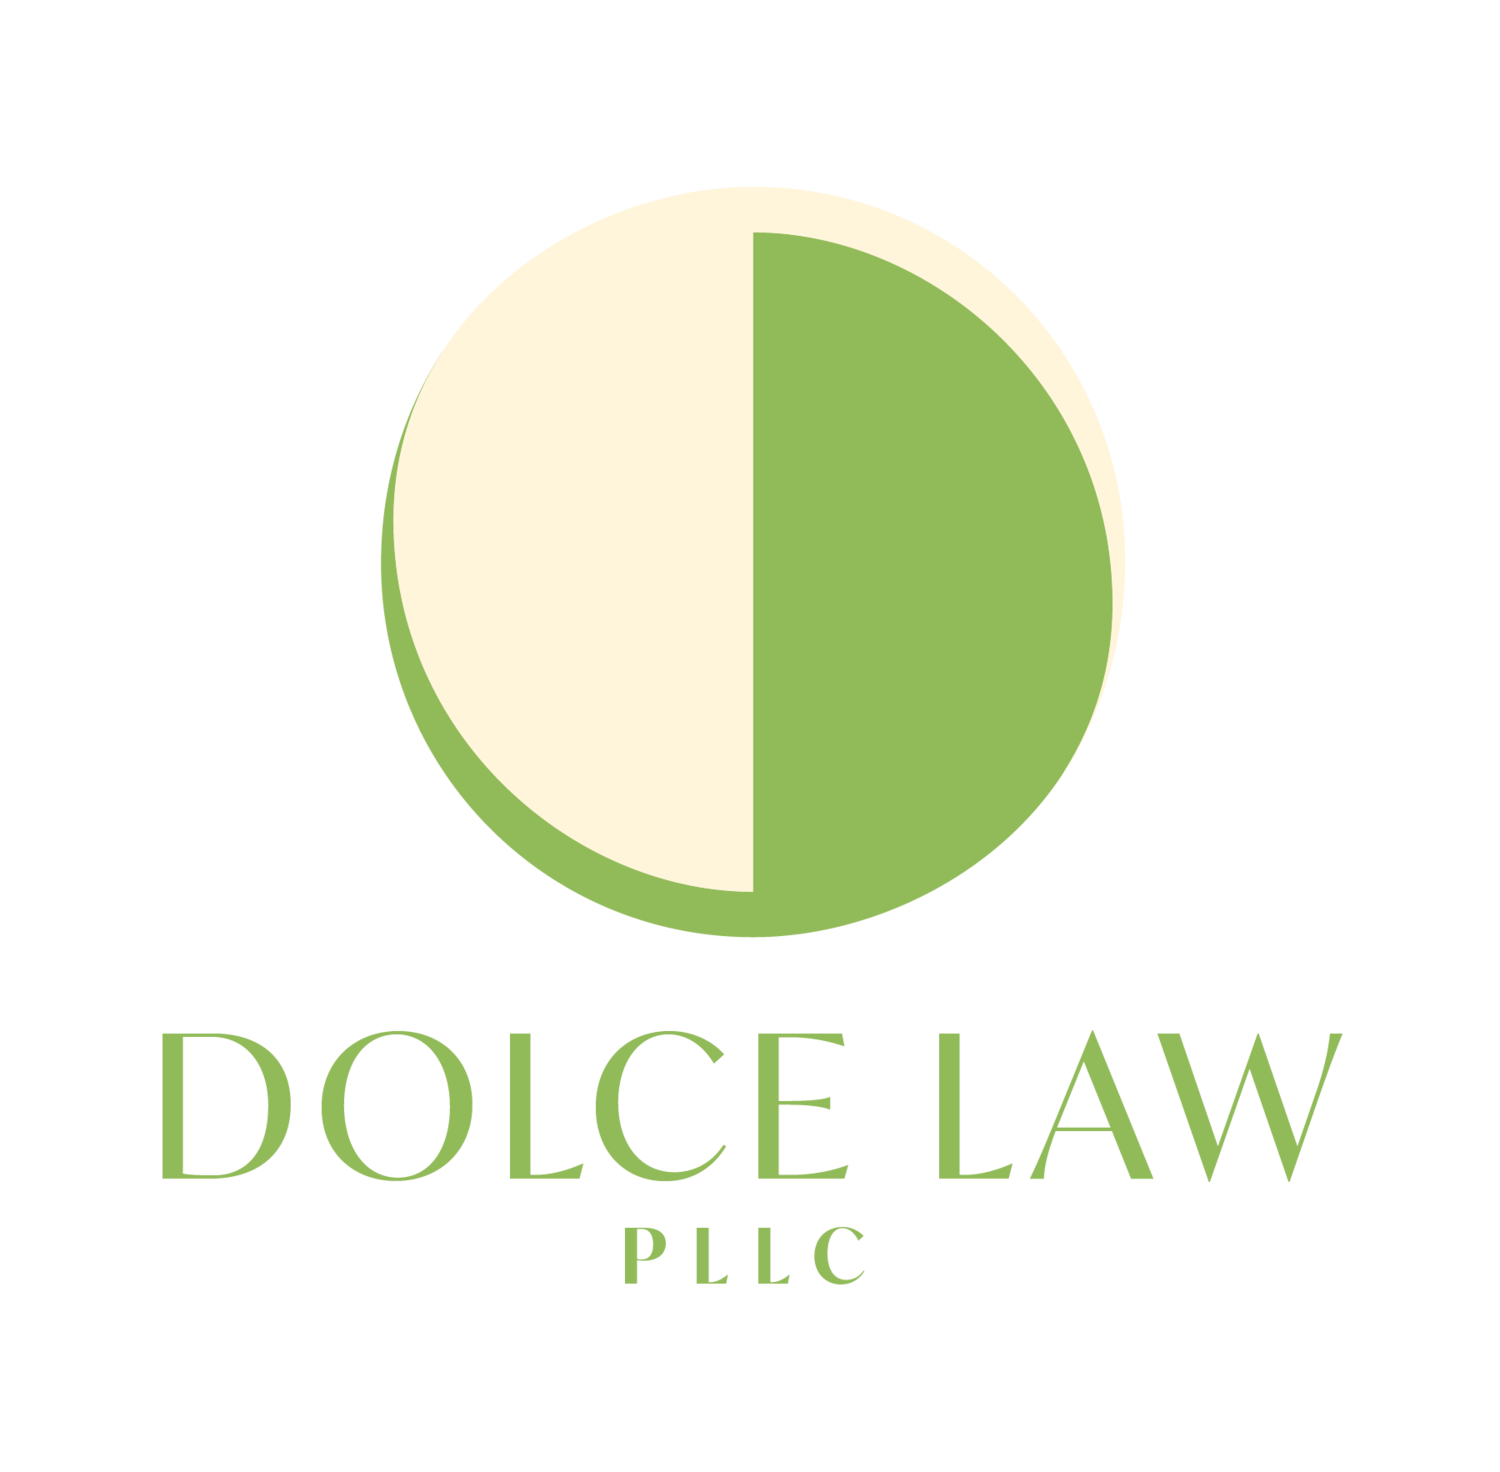 Dolce Law PLLC